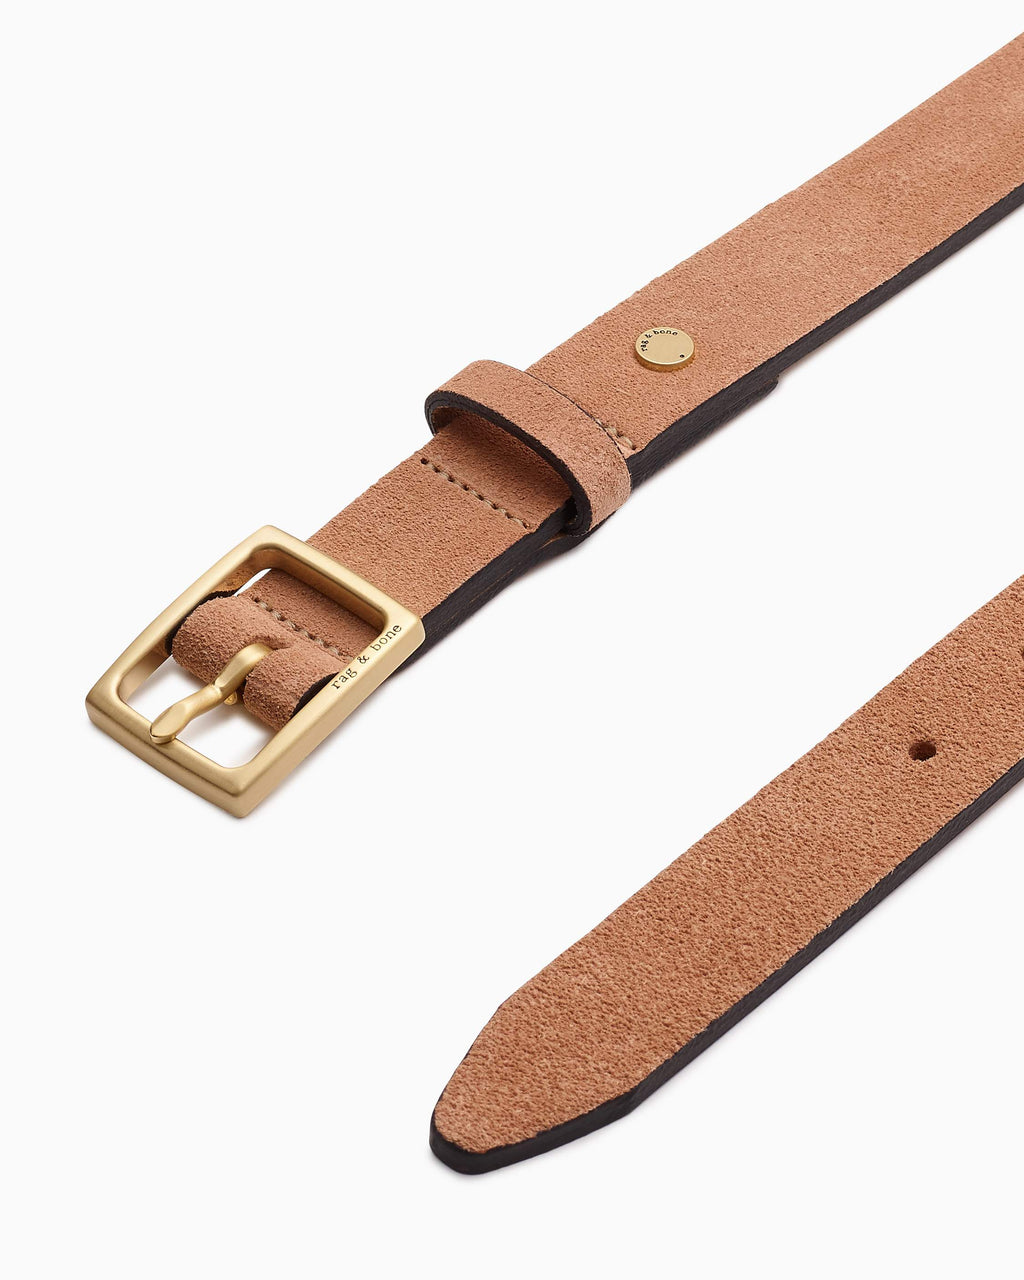 Rag & bone baby boyfriend belt in blush suede